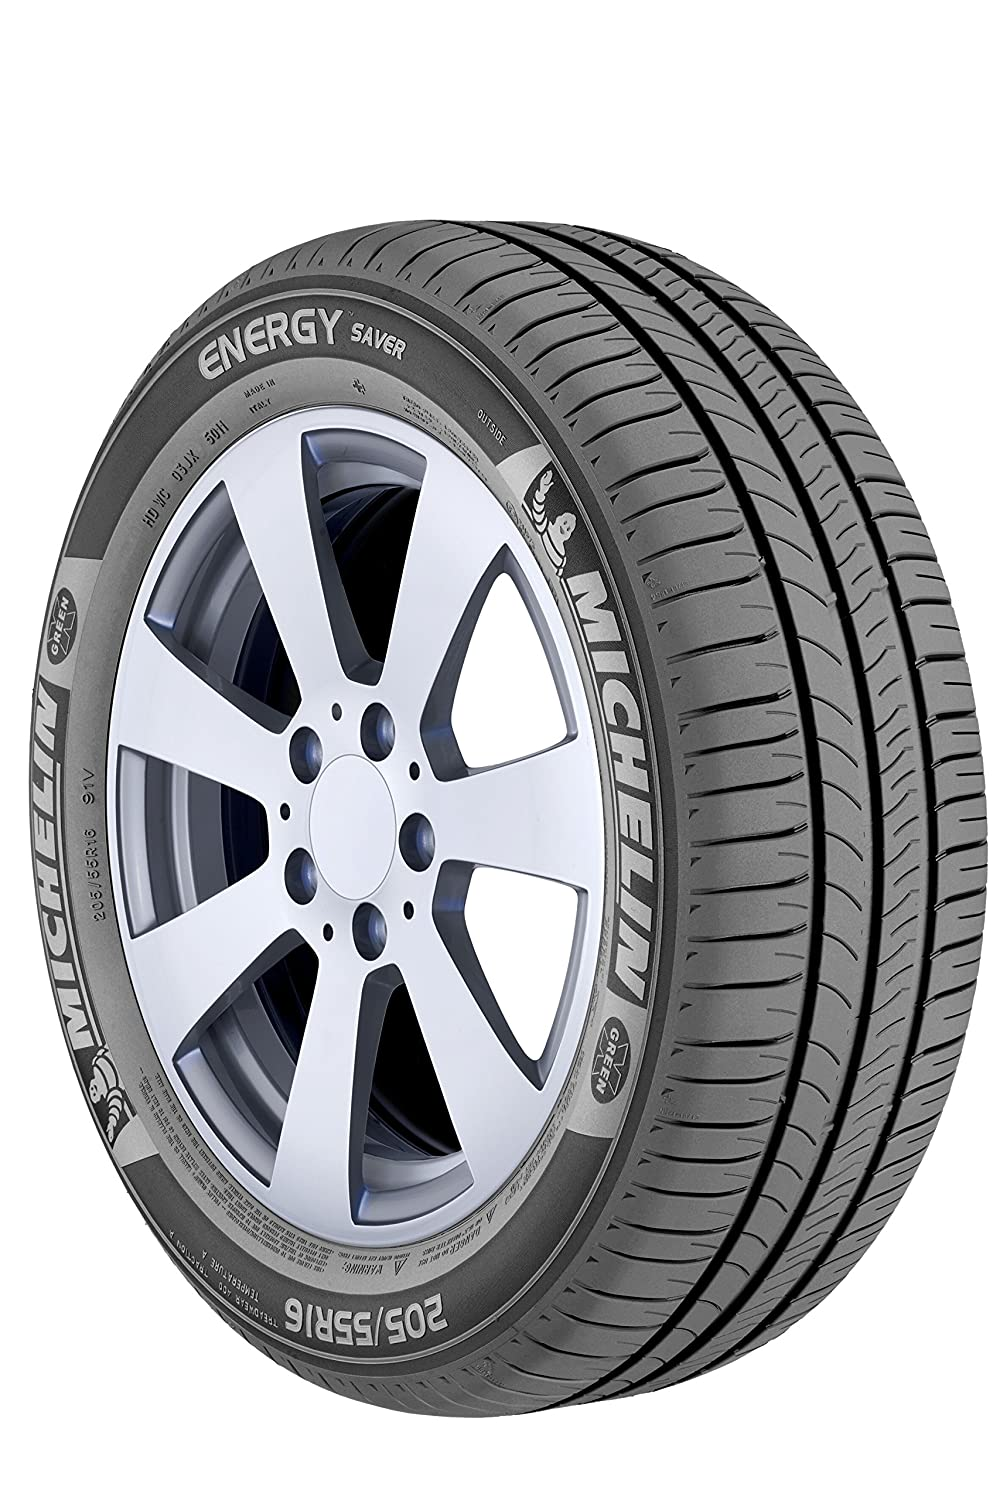 MICHELIN ENERGY SAVER+ - 195/65/15 91H - A/C/70dB - Summer Tyre (Passenger Car)